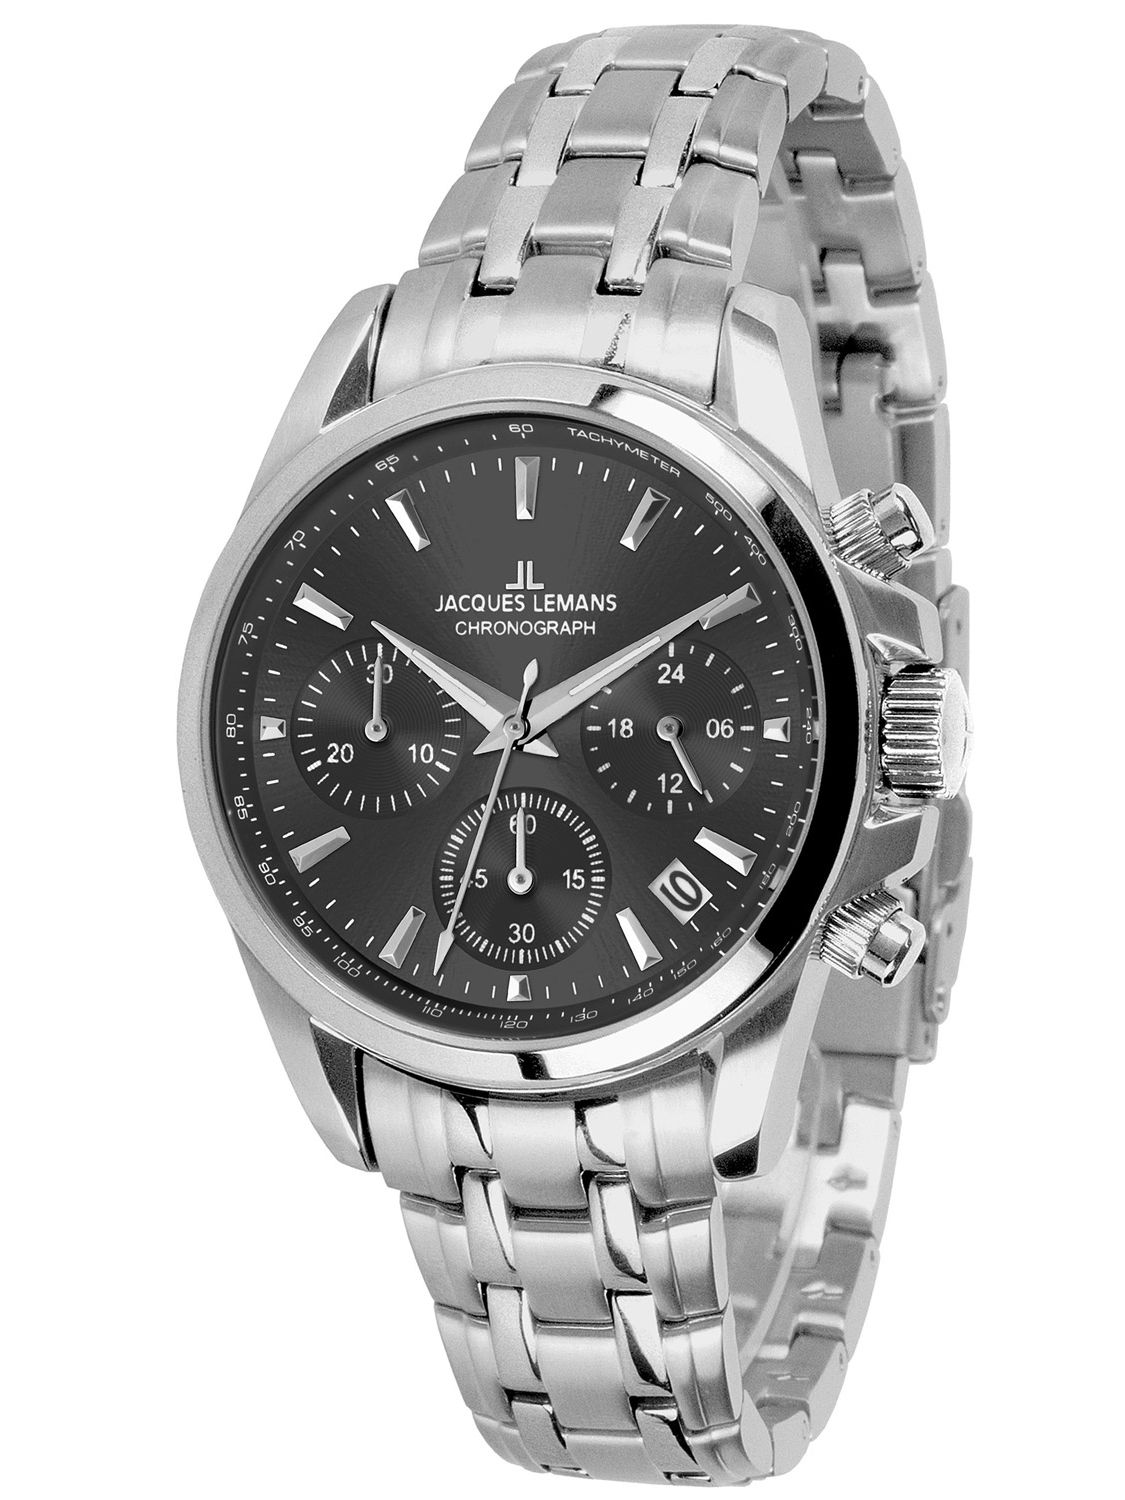 Chronograph Damen Uhr Jacques Lemans 1 1863zd Damenuhr Chronograph Liverpool